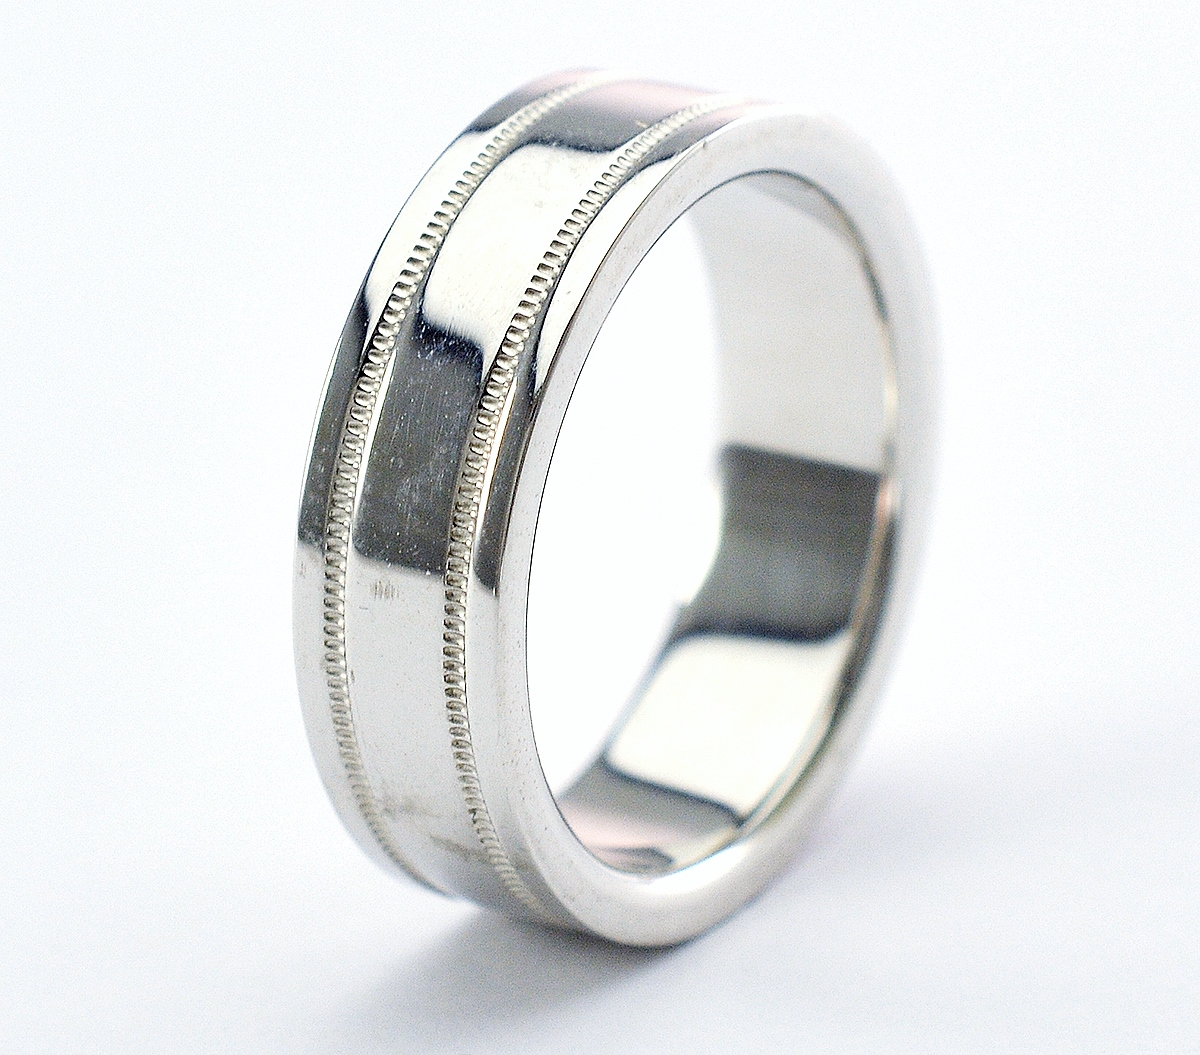 91a5b3f4d Image 1 of 4. Tiffany & Co. Platinum 13.40 Grams High Polished Lady's Band  With Double Milgrain